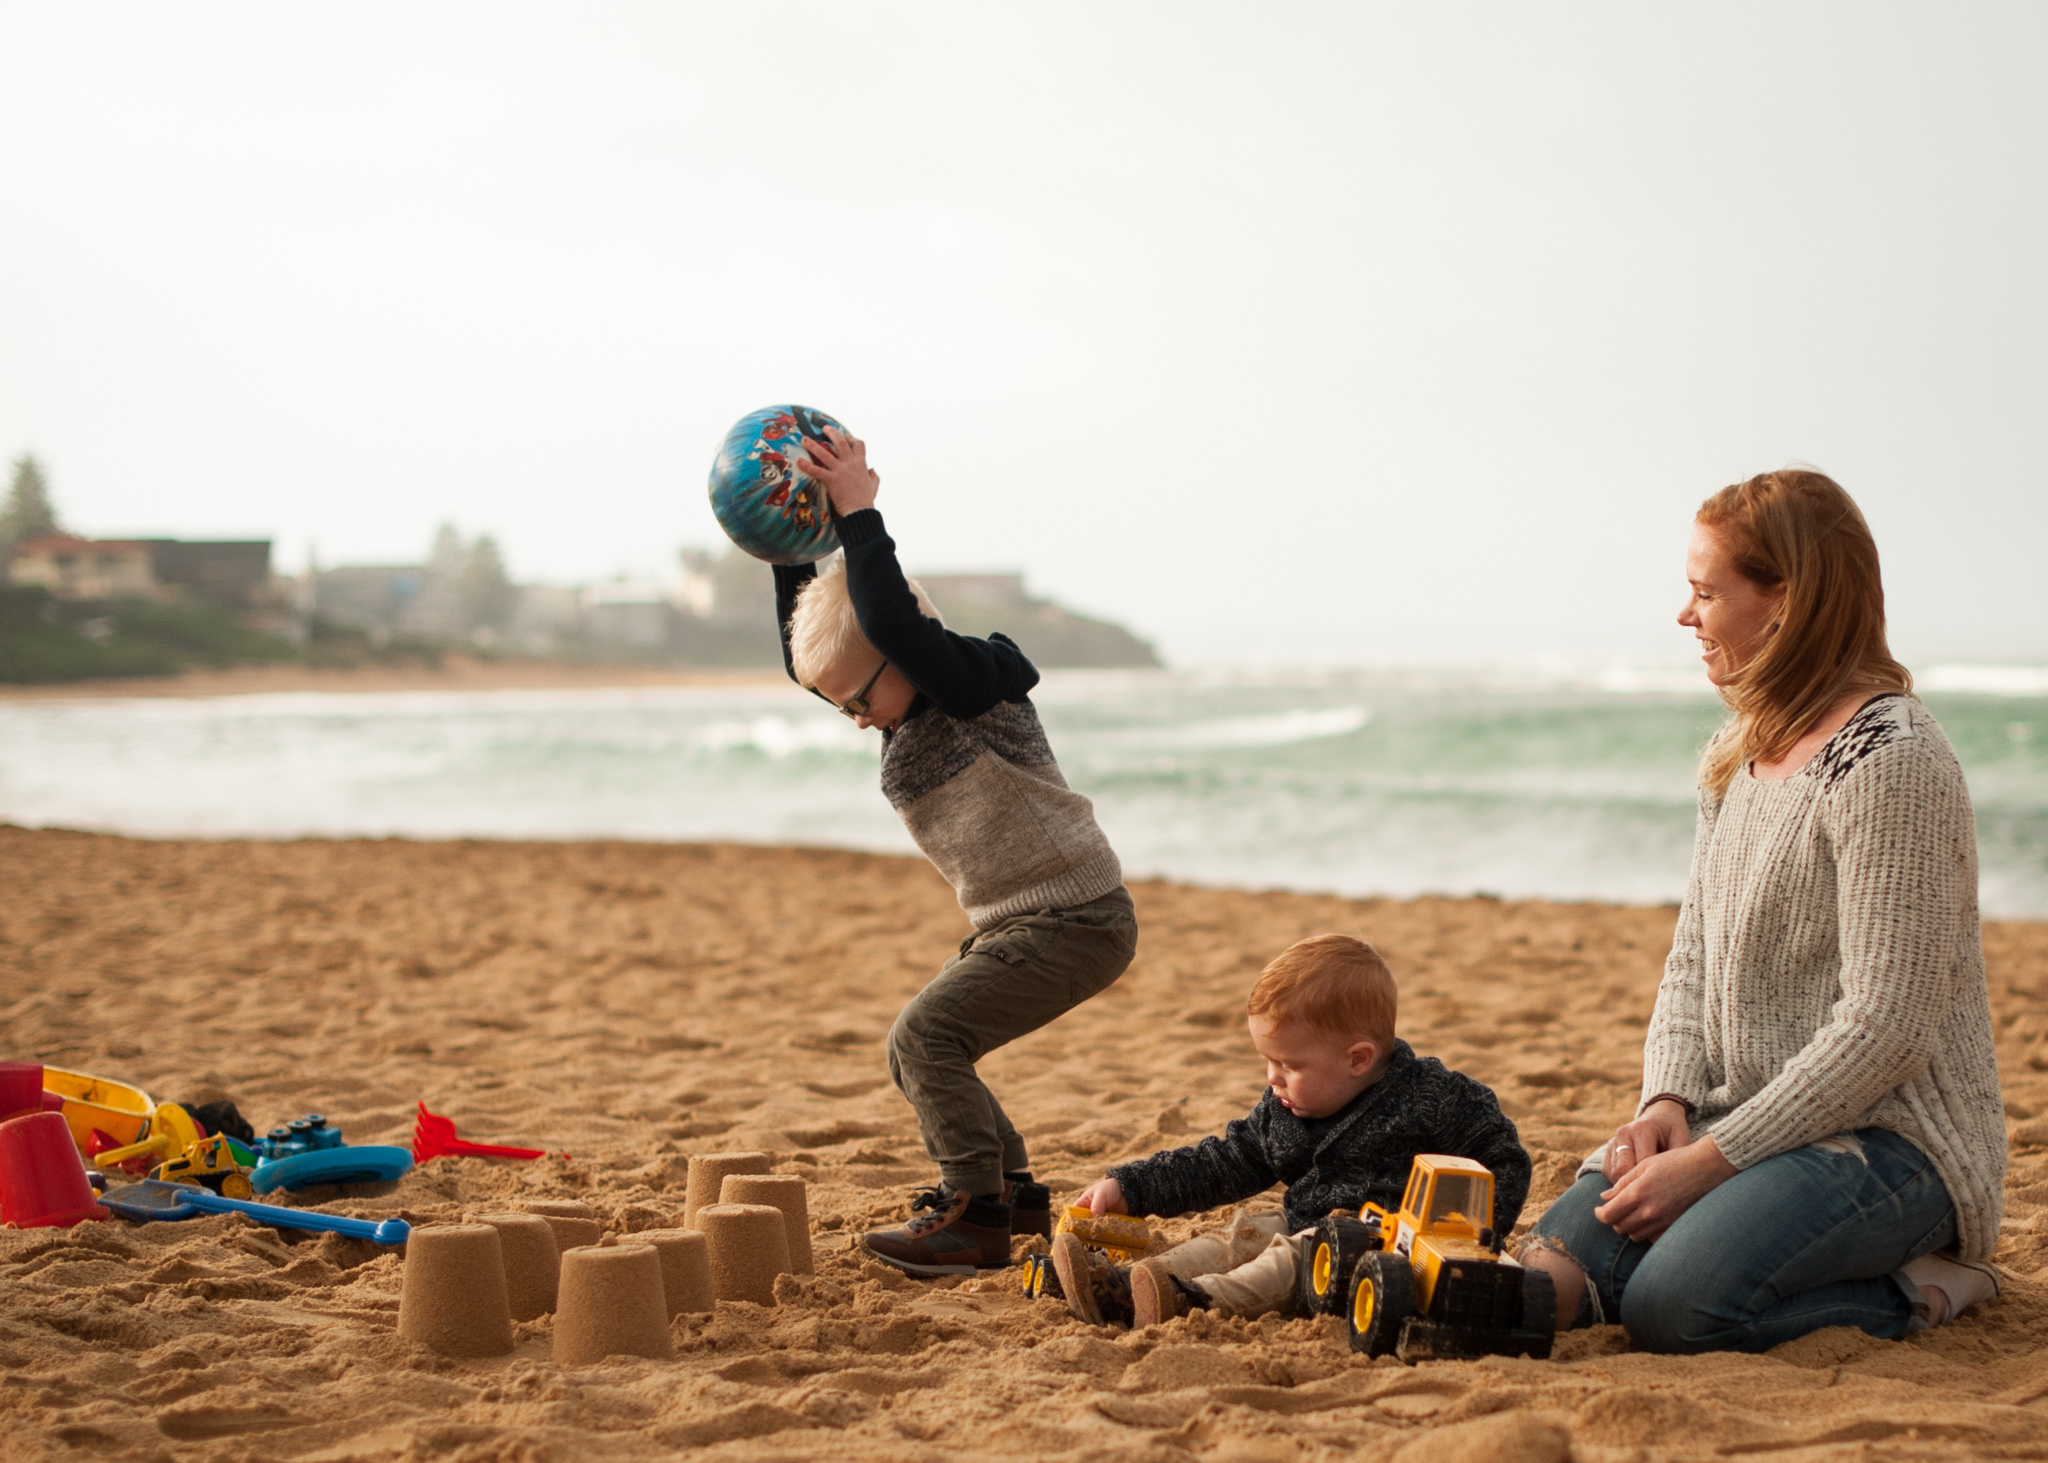 Throwing ball at sandcastles